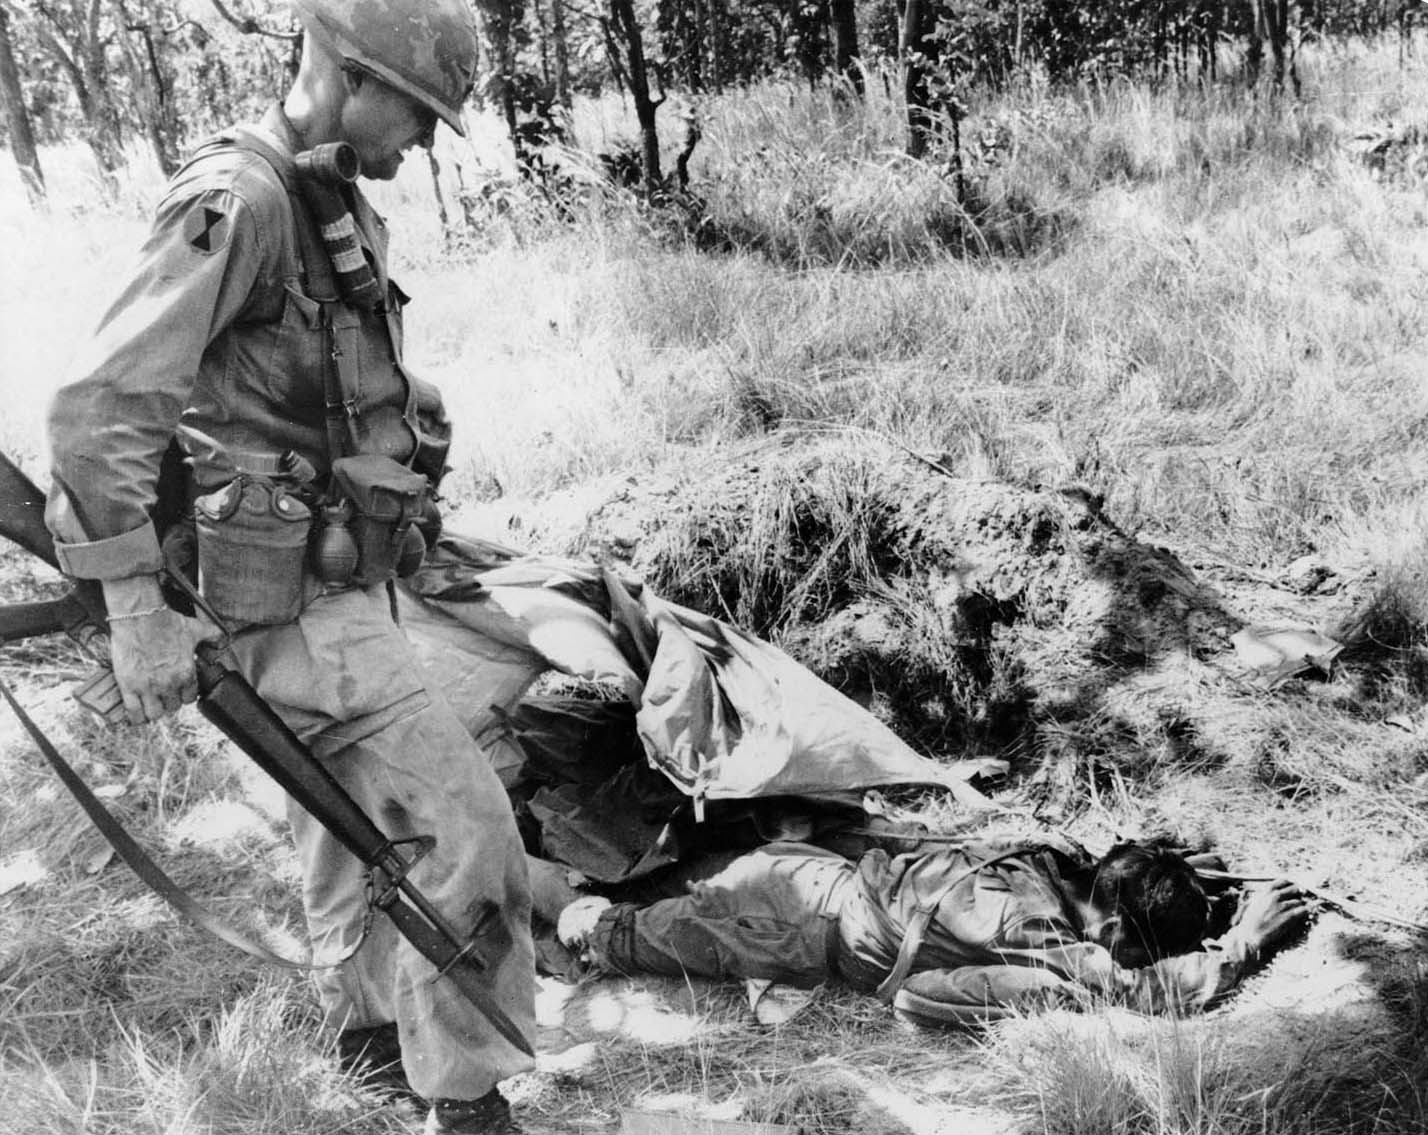 Inspecting Enemy Bodies - Ia Drang Battle